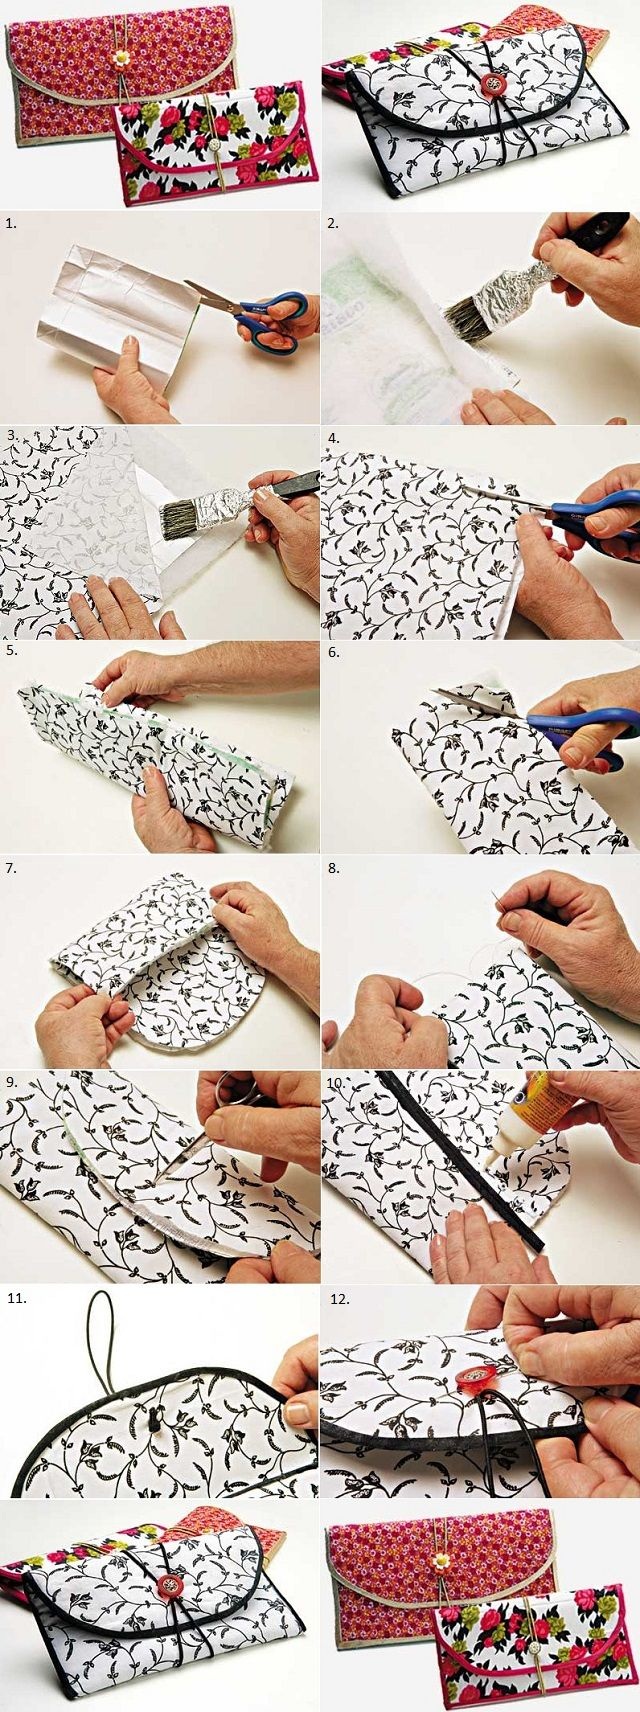 Transform a Milk Carton into a Wallet 1